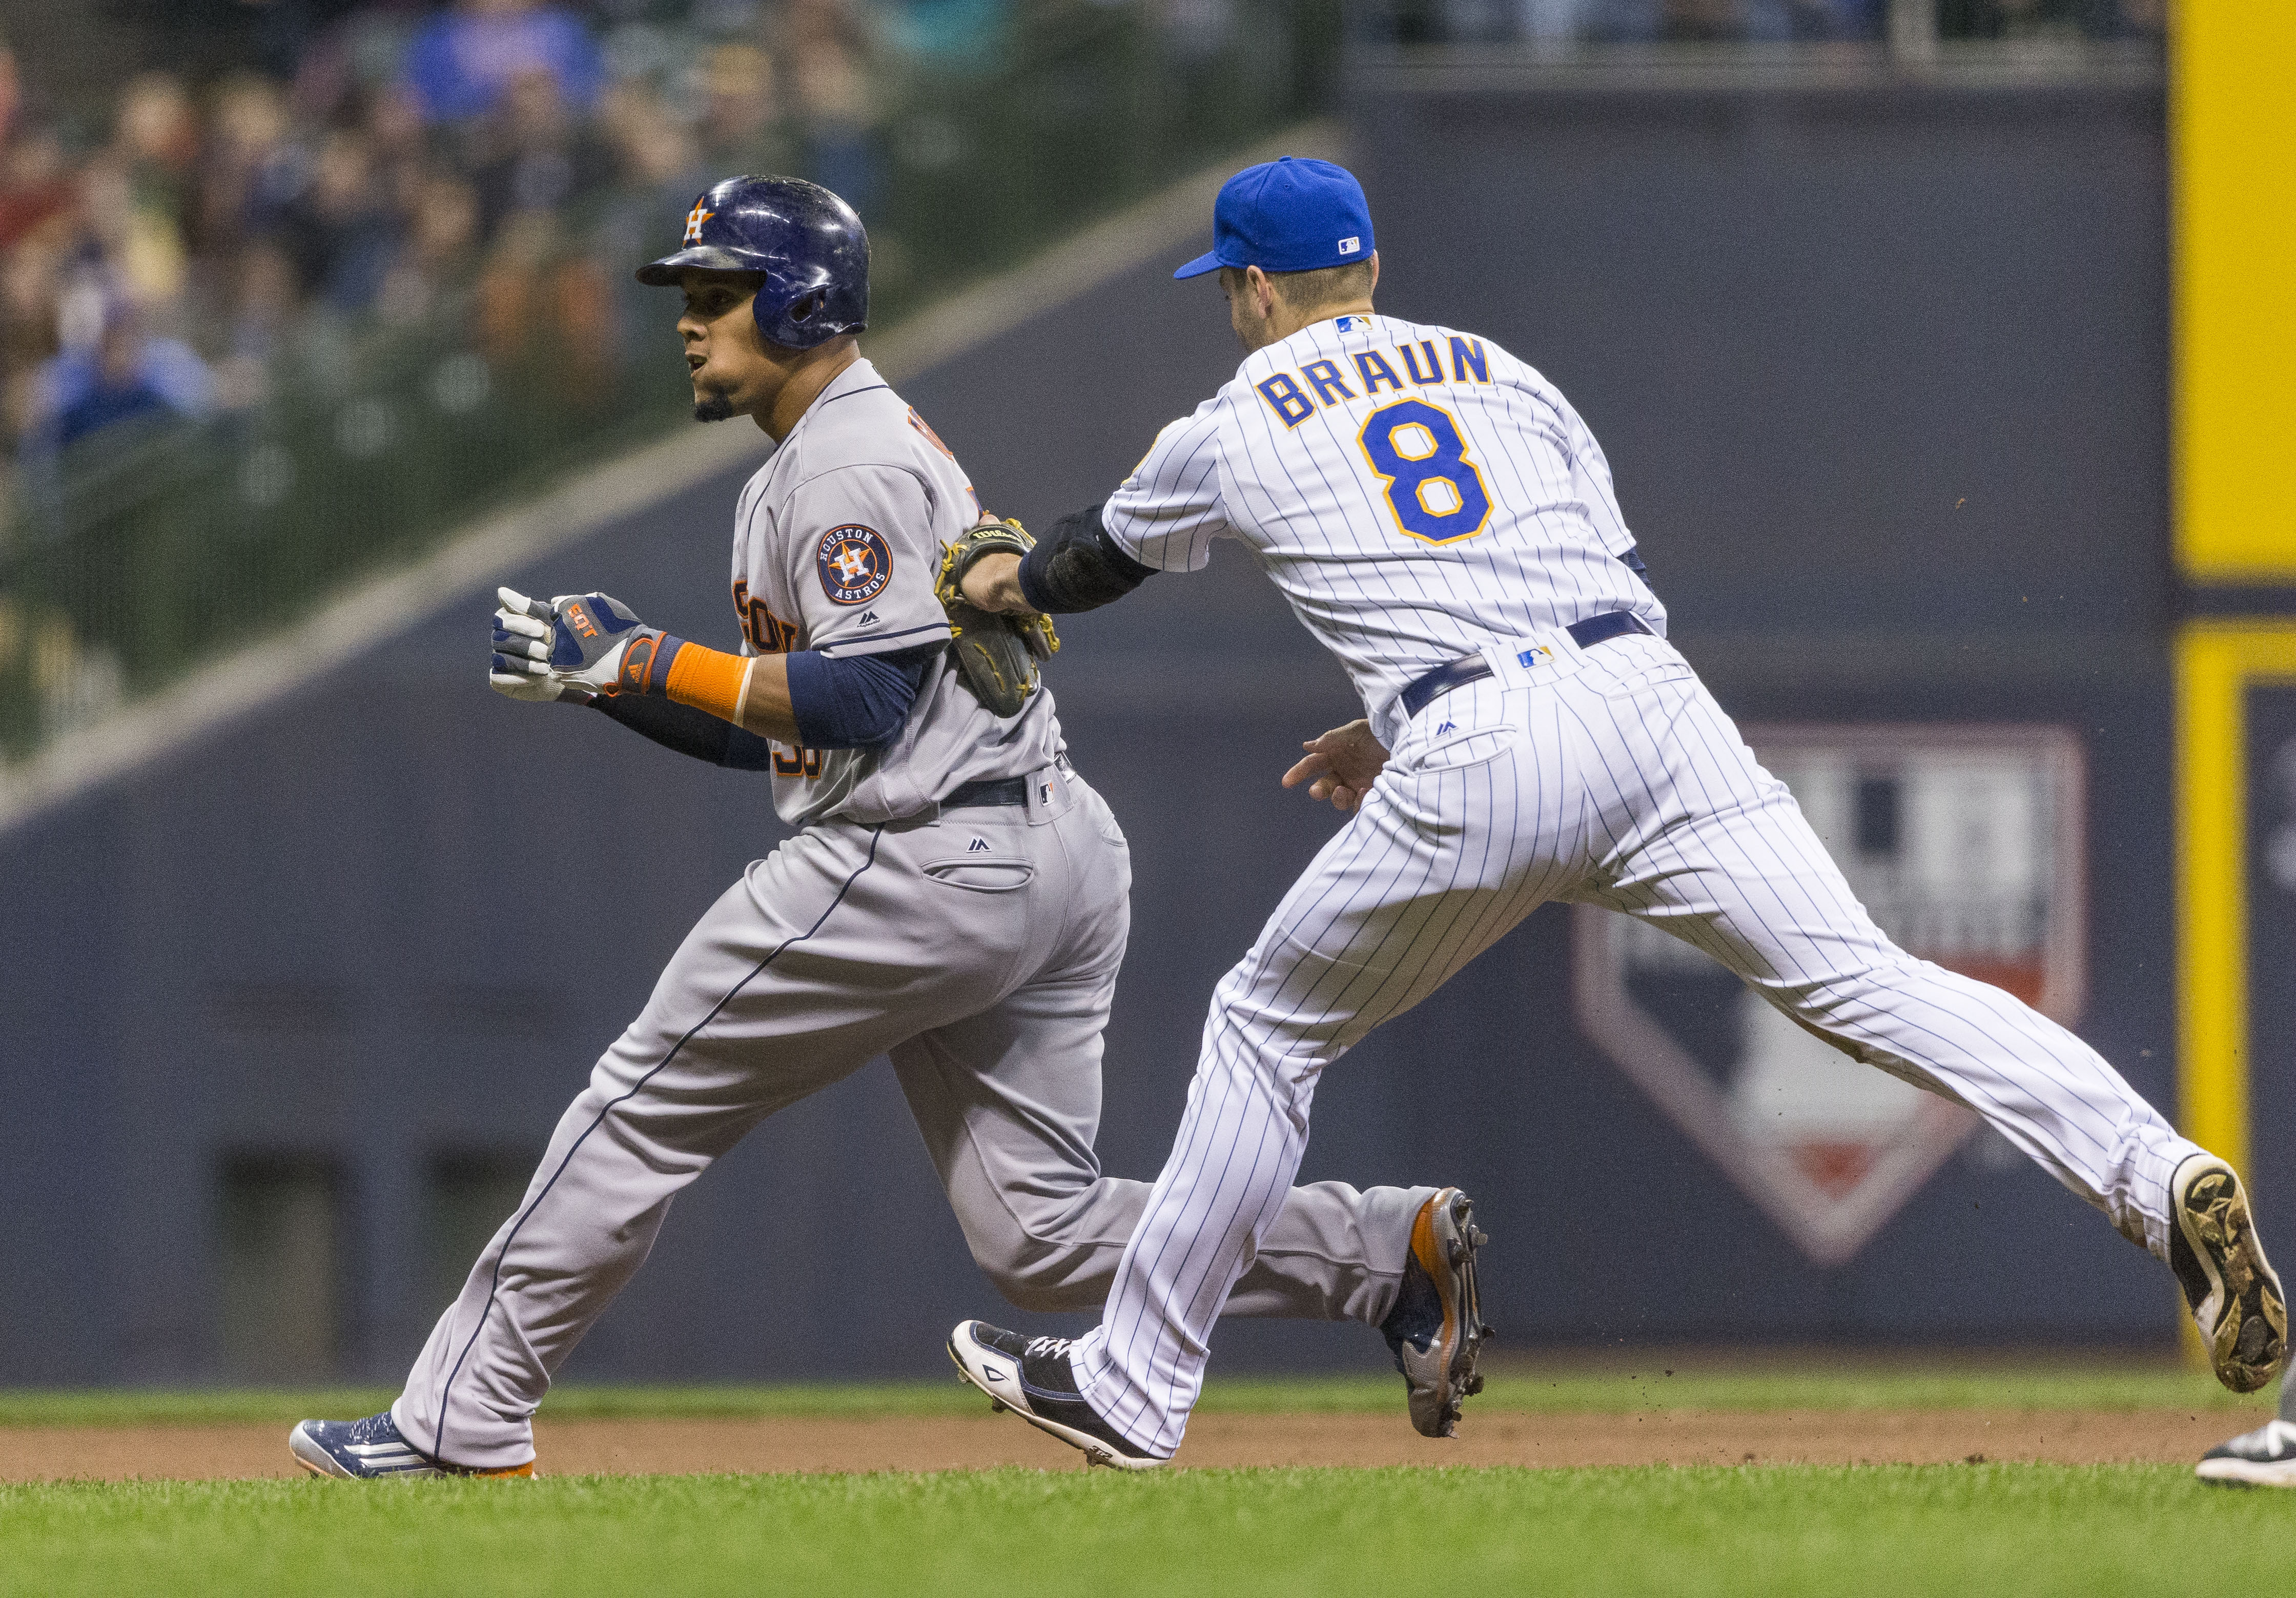 Houston Astros' Carlos Gomez, left, is caught stealing third, forcing a rundown, and tagged out by Milwaukee Brewers' Ryan Braun during the fourth inning of a baseball game Friday, April 8, 2016, in Milwaukee. (AP Photo/Tom Lynn)